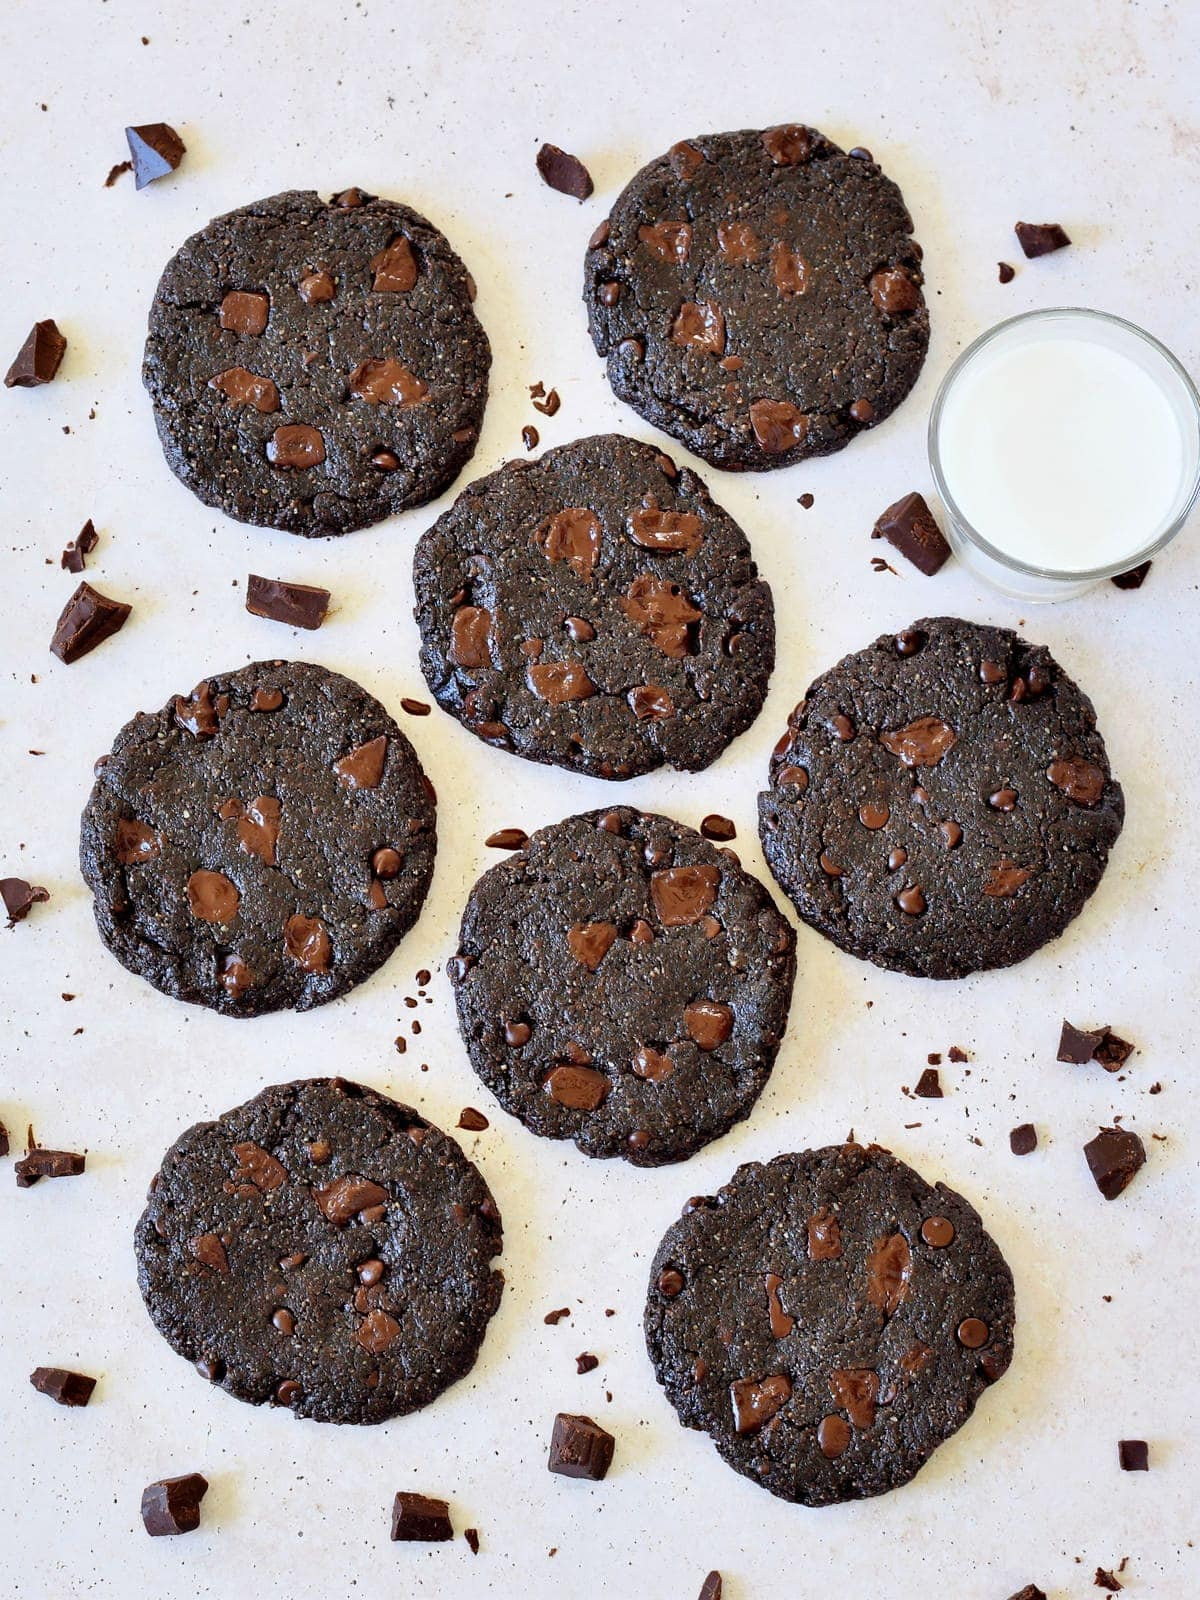 8 vegan double chocolate chip cookies from above